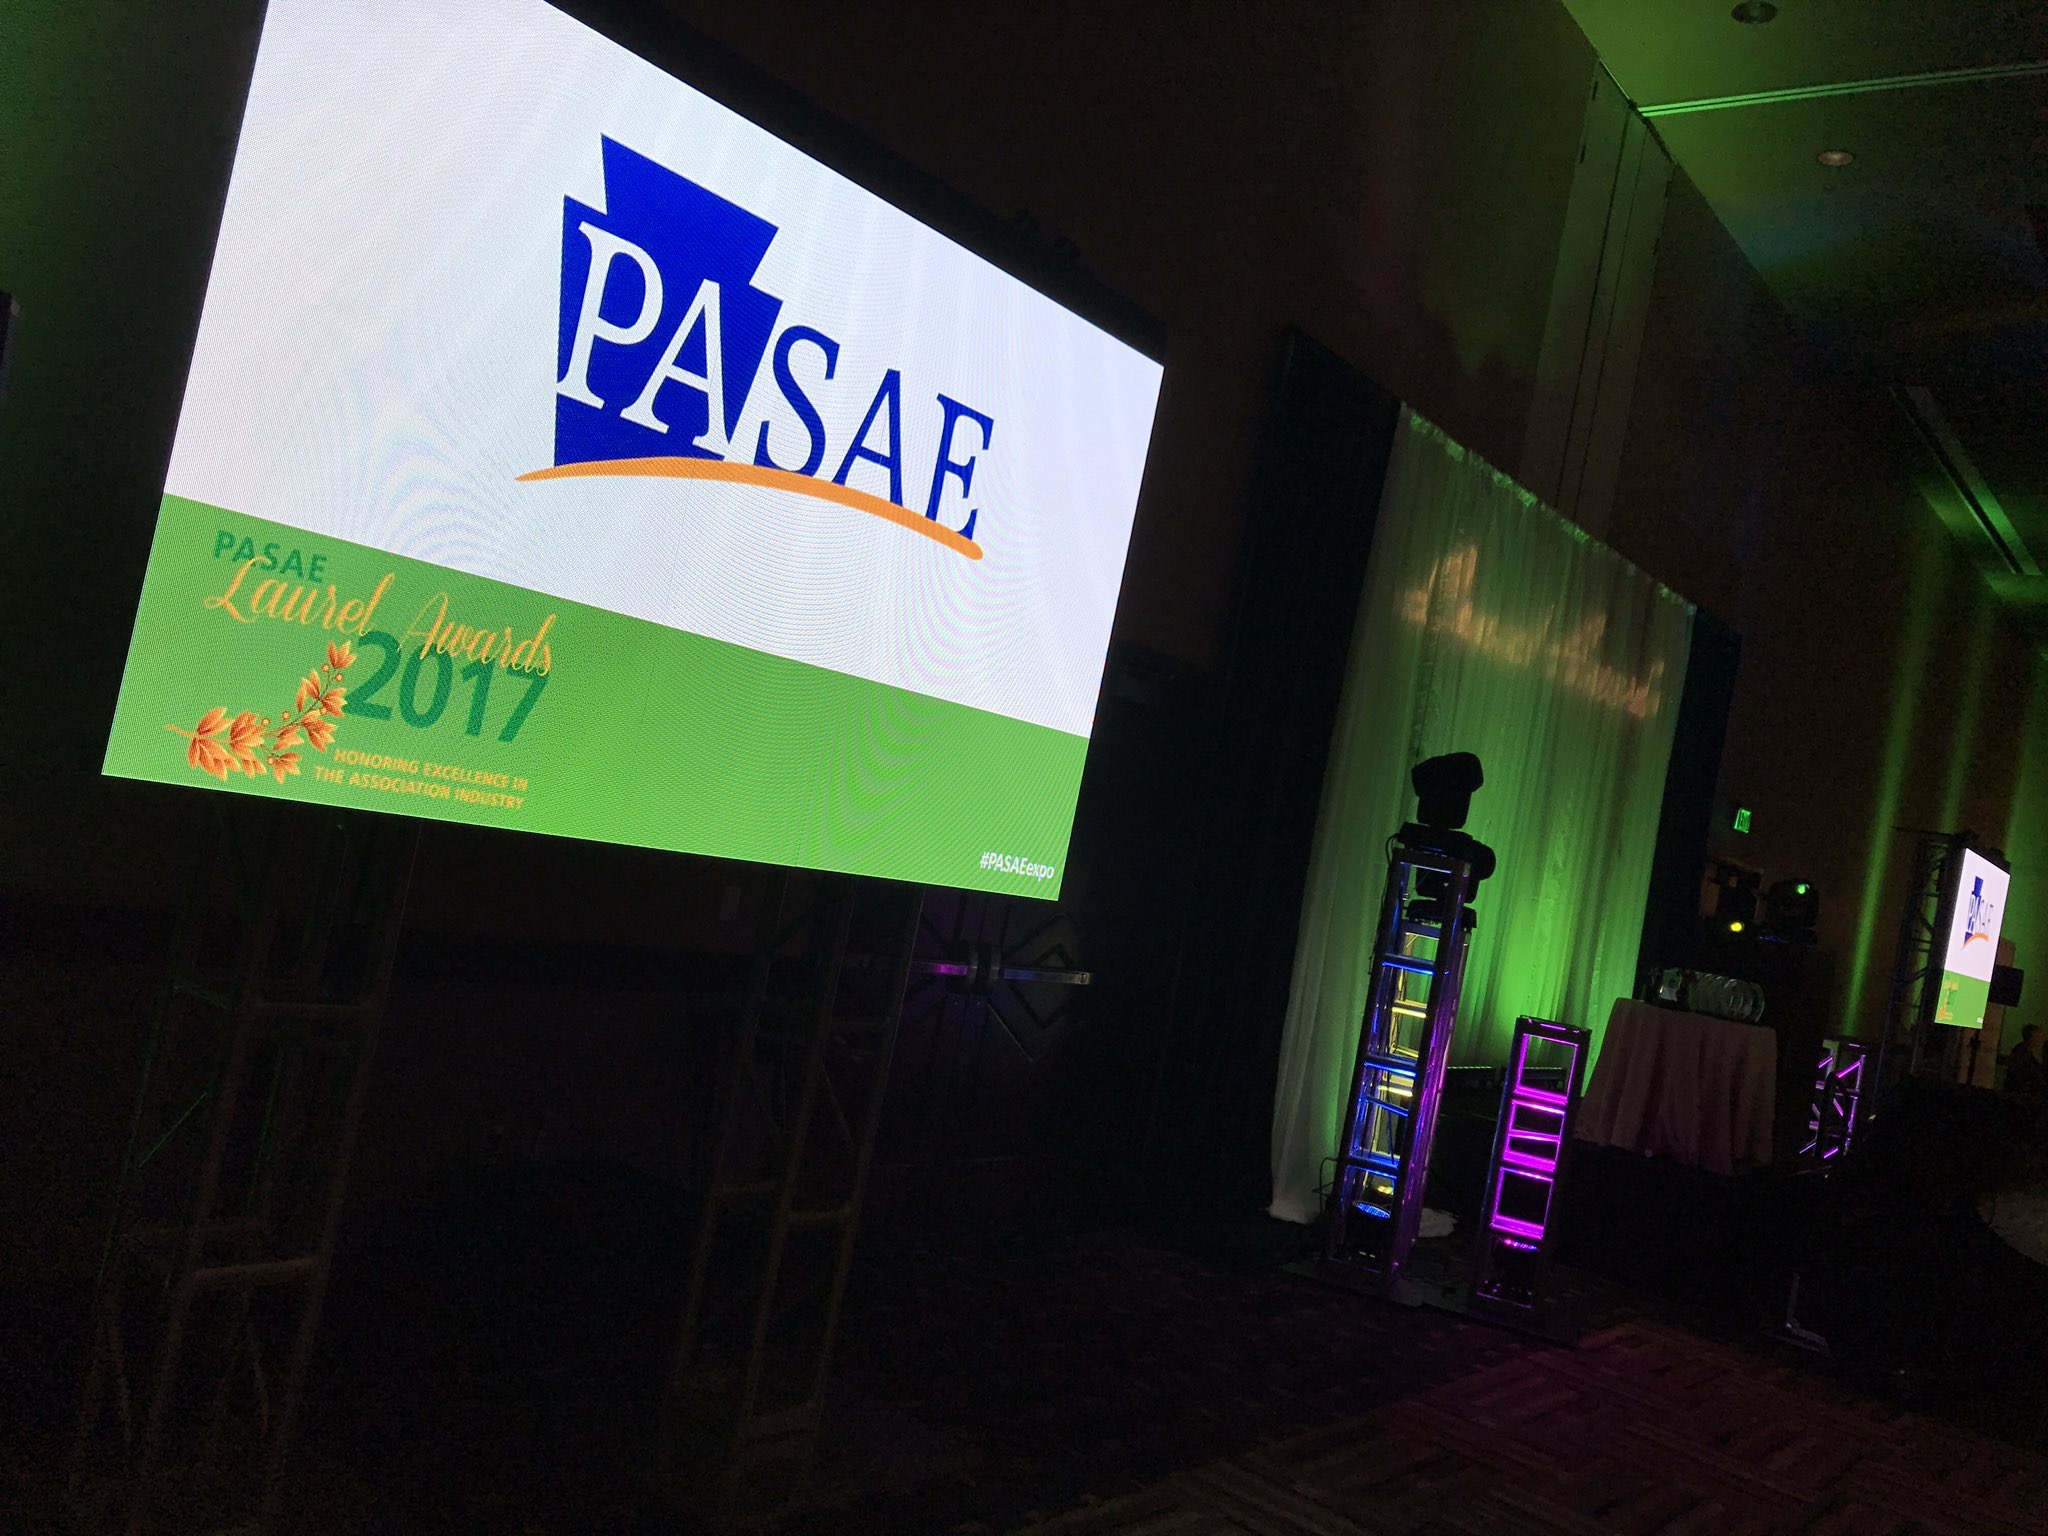 PASAE 2016 Laurel Awards LED Walls and Stage Setup